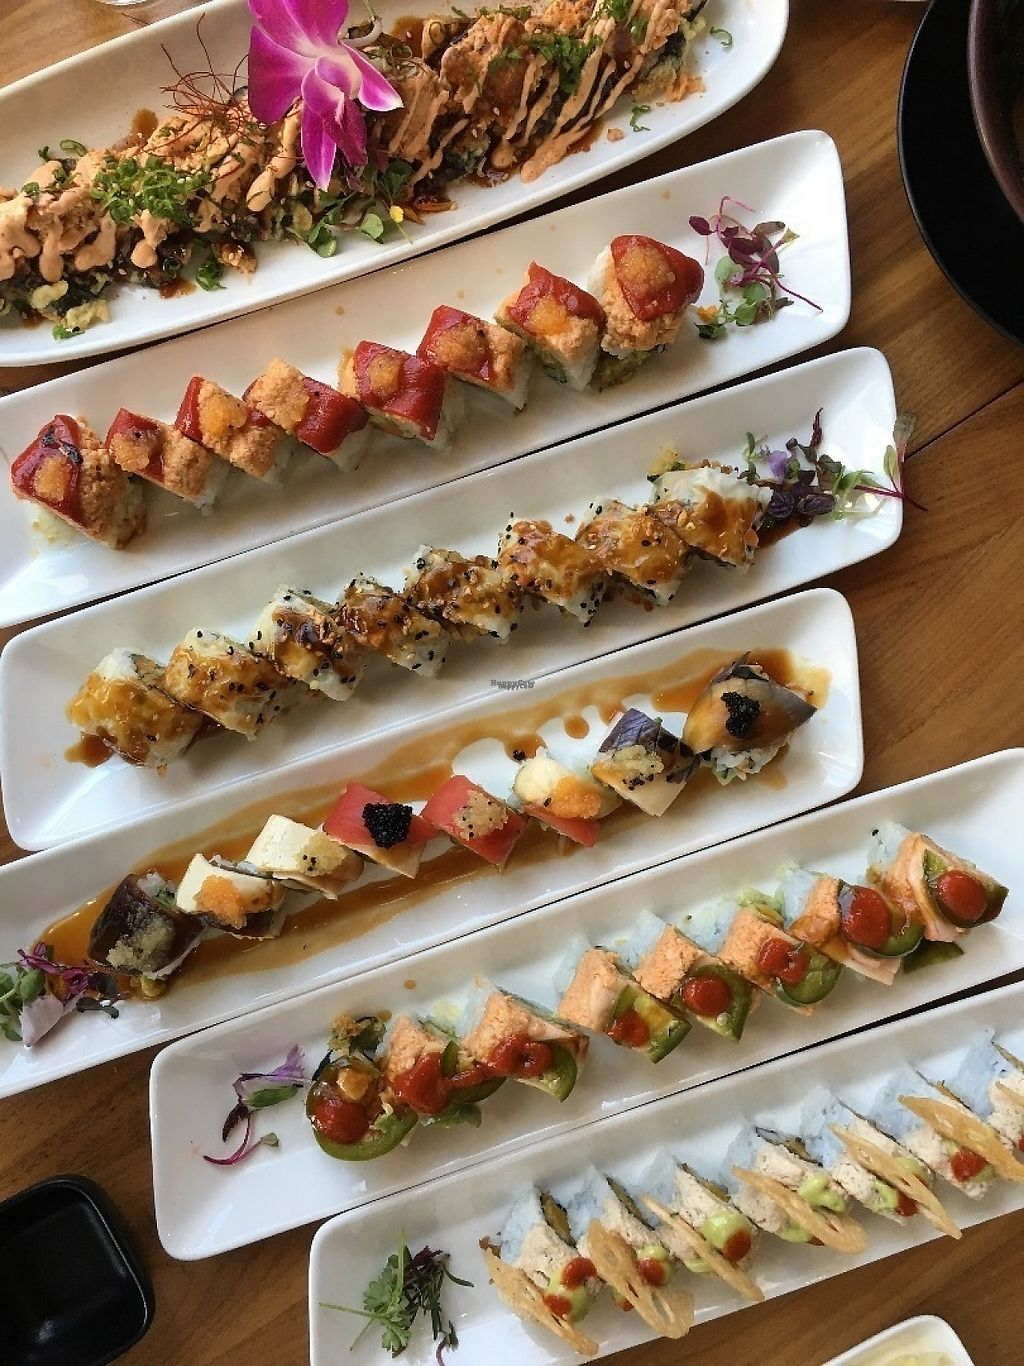 """Photo of Shizen Vegan Sushi Bar  by <a href=""""/members/profile/djoe"""">djoe</a> <br/>So creative and delicious! <br/> March 28, 2017  - <a href='/contact/abuse/image/54689/242083'>Report</a>"""